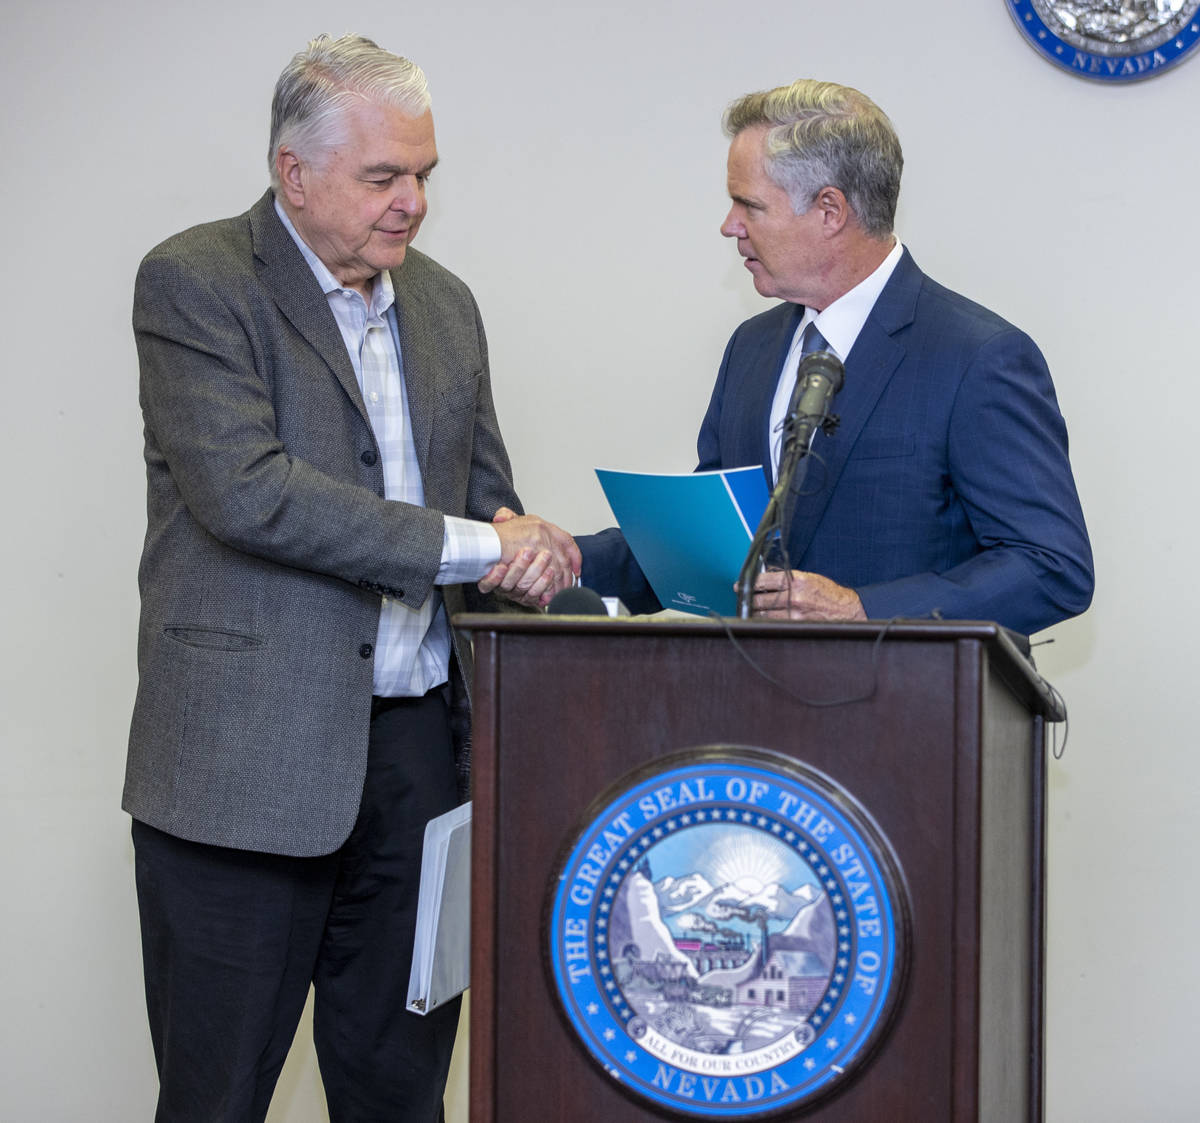 Gov. Steve Sisolak, left, shakes hands with the Nevada COVID-19 Response, Relief and Recovery T ...